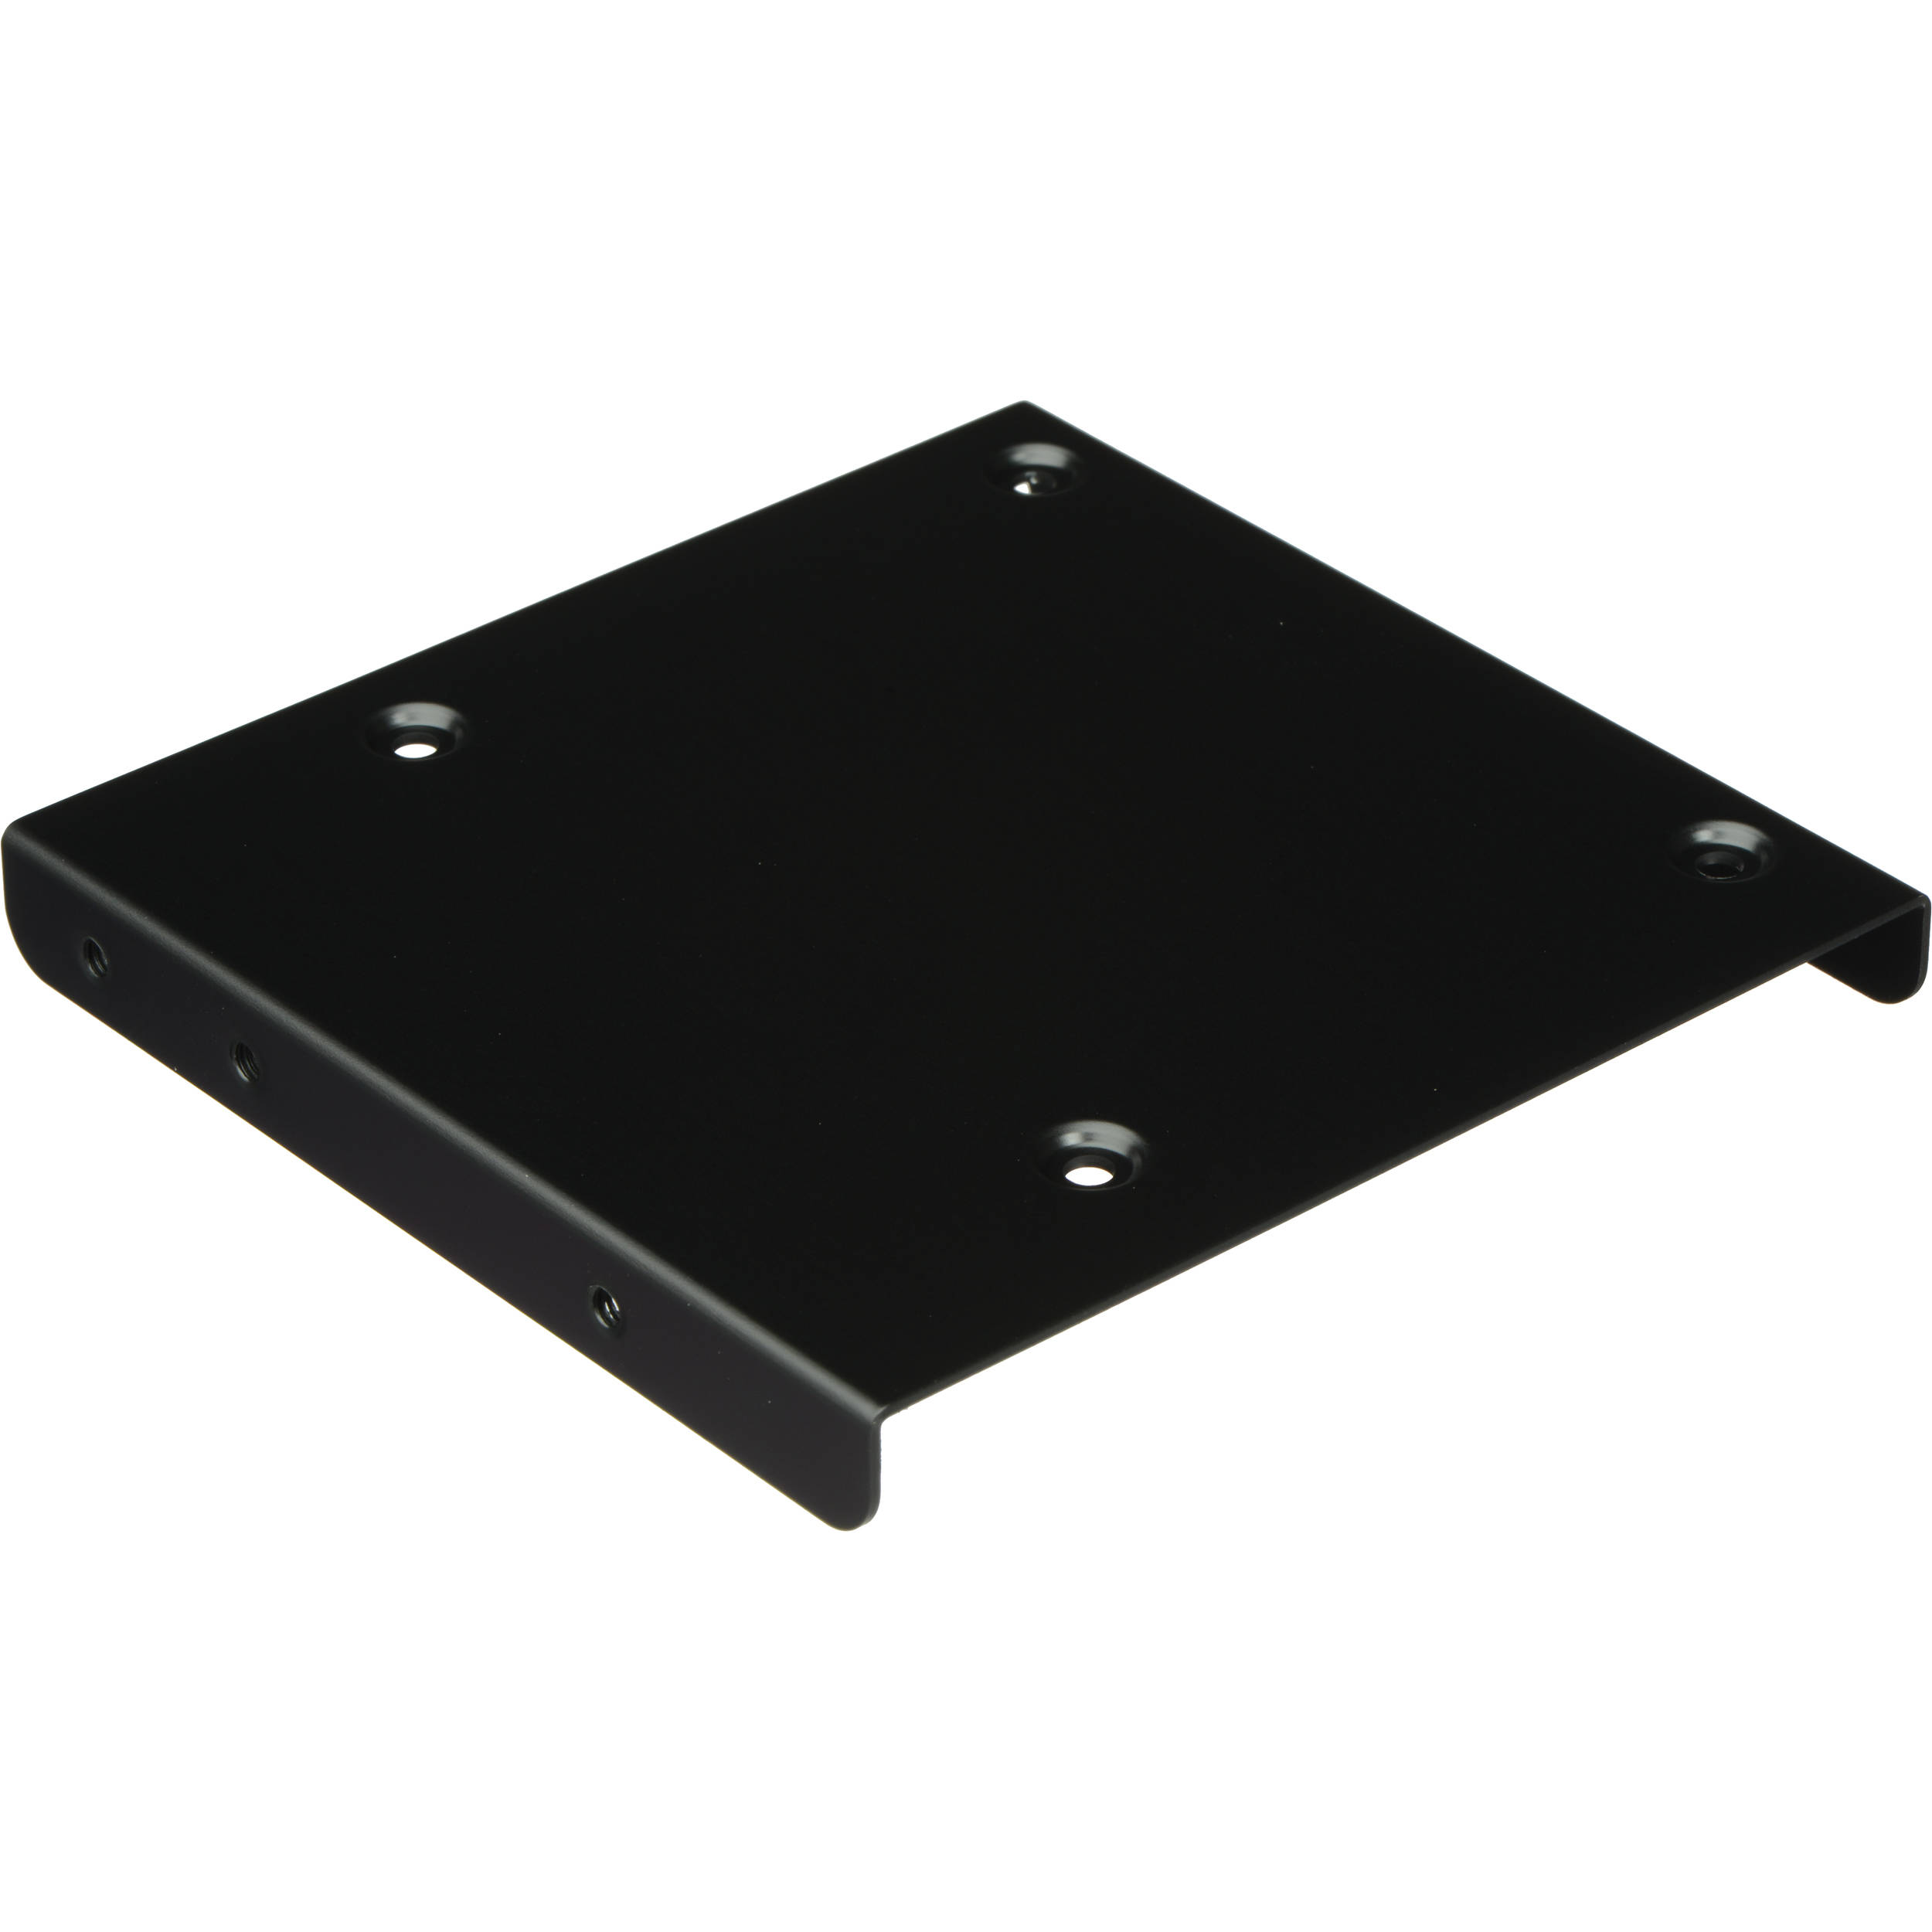 "2.5/""SSD to 3.5/"" Hard Drive Dual Desktop PC Bay Adapter Mounting Bracket Black"